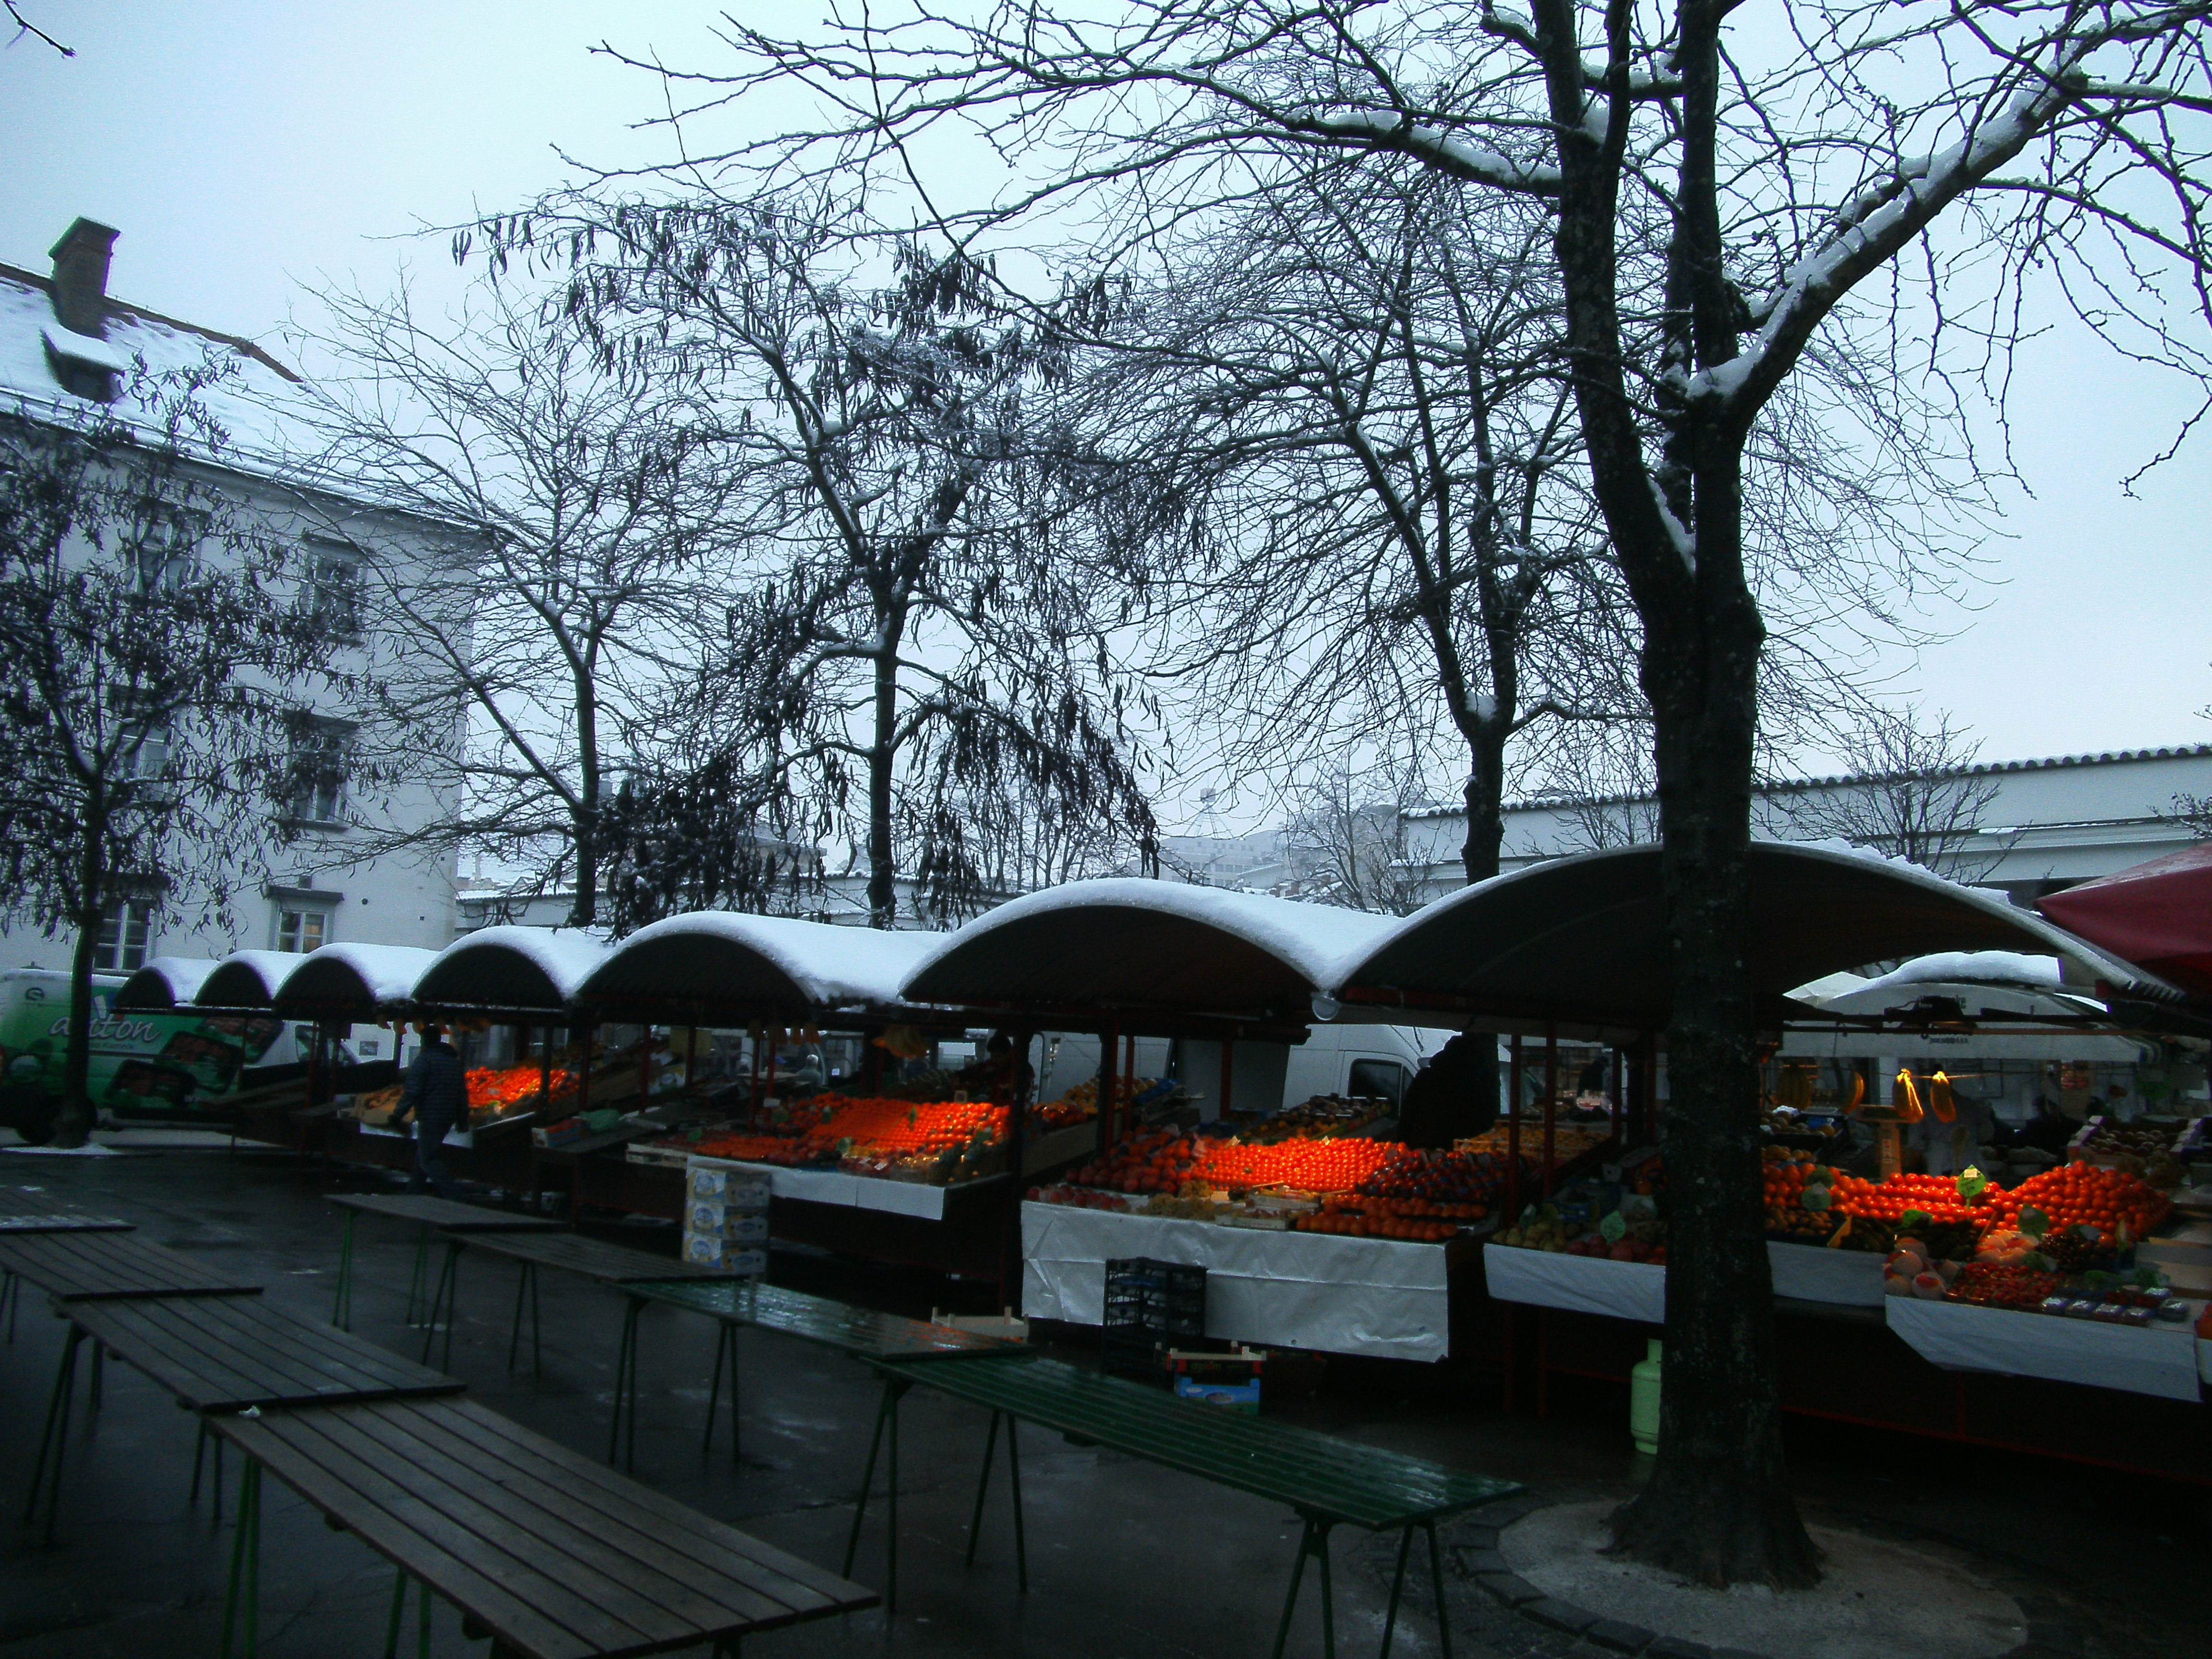 Oranges in winter morning